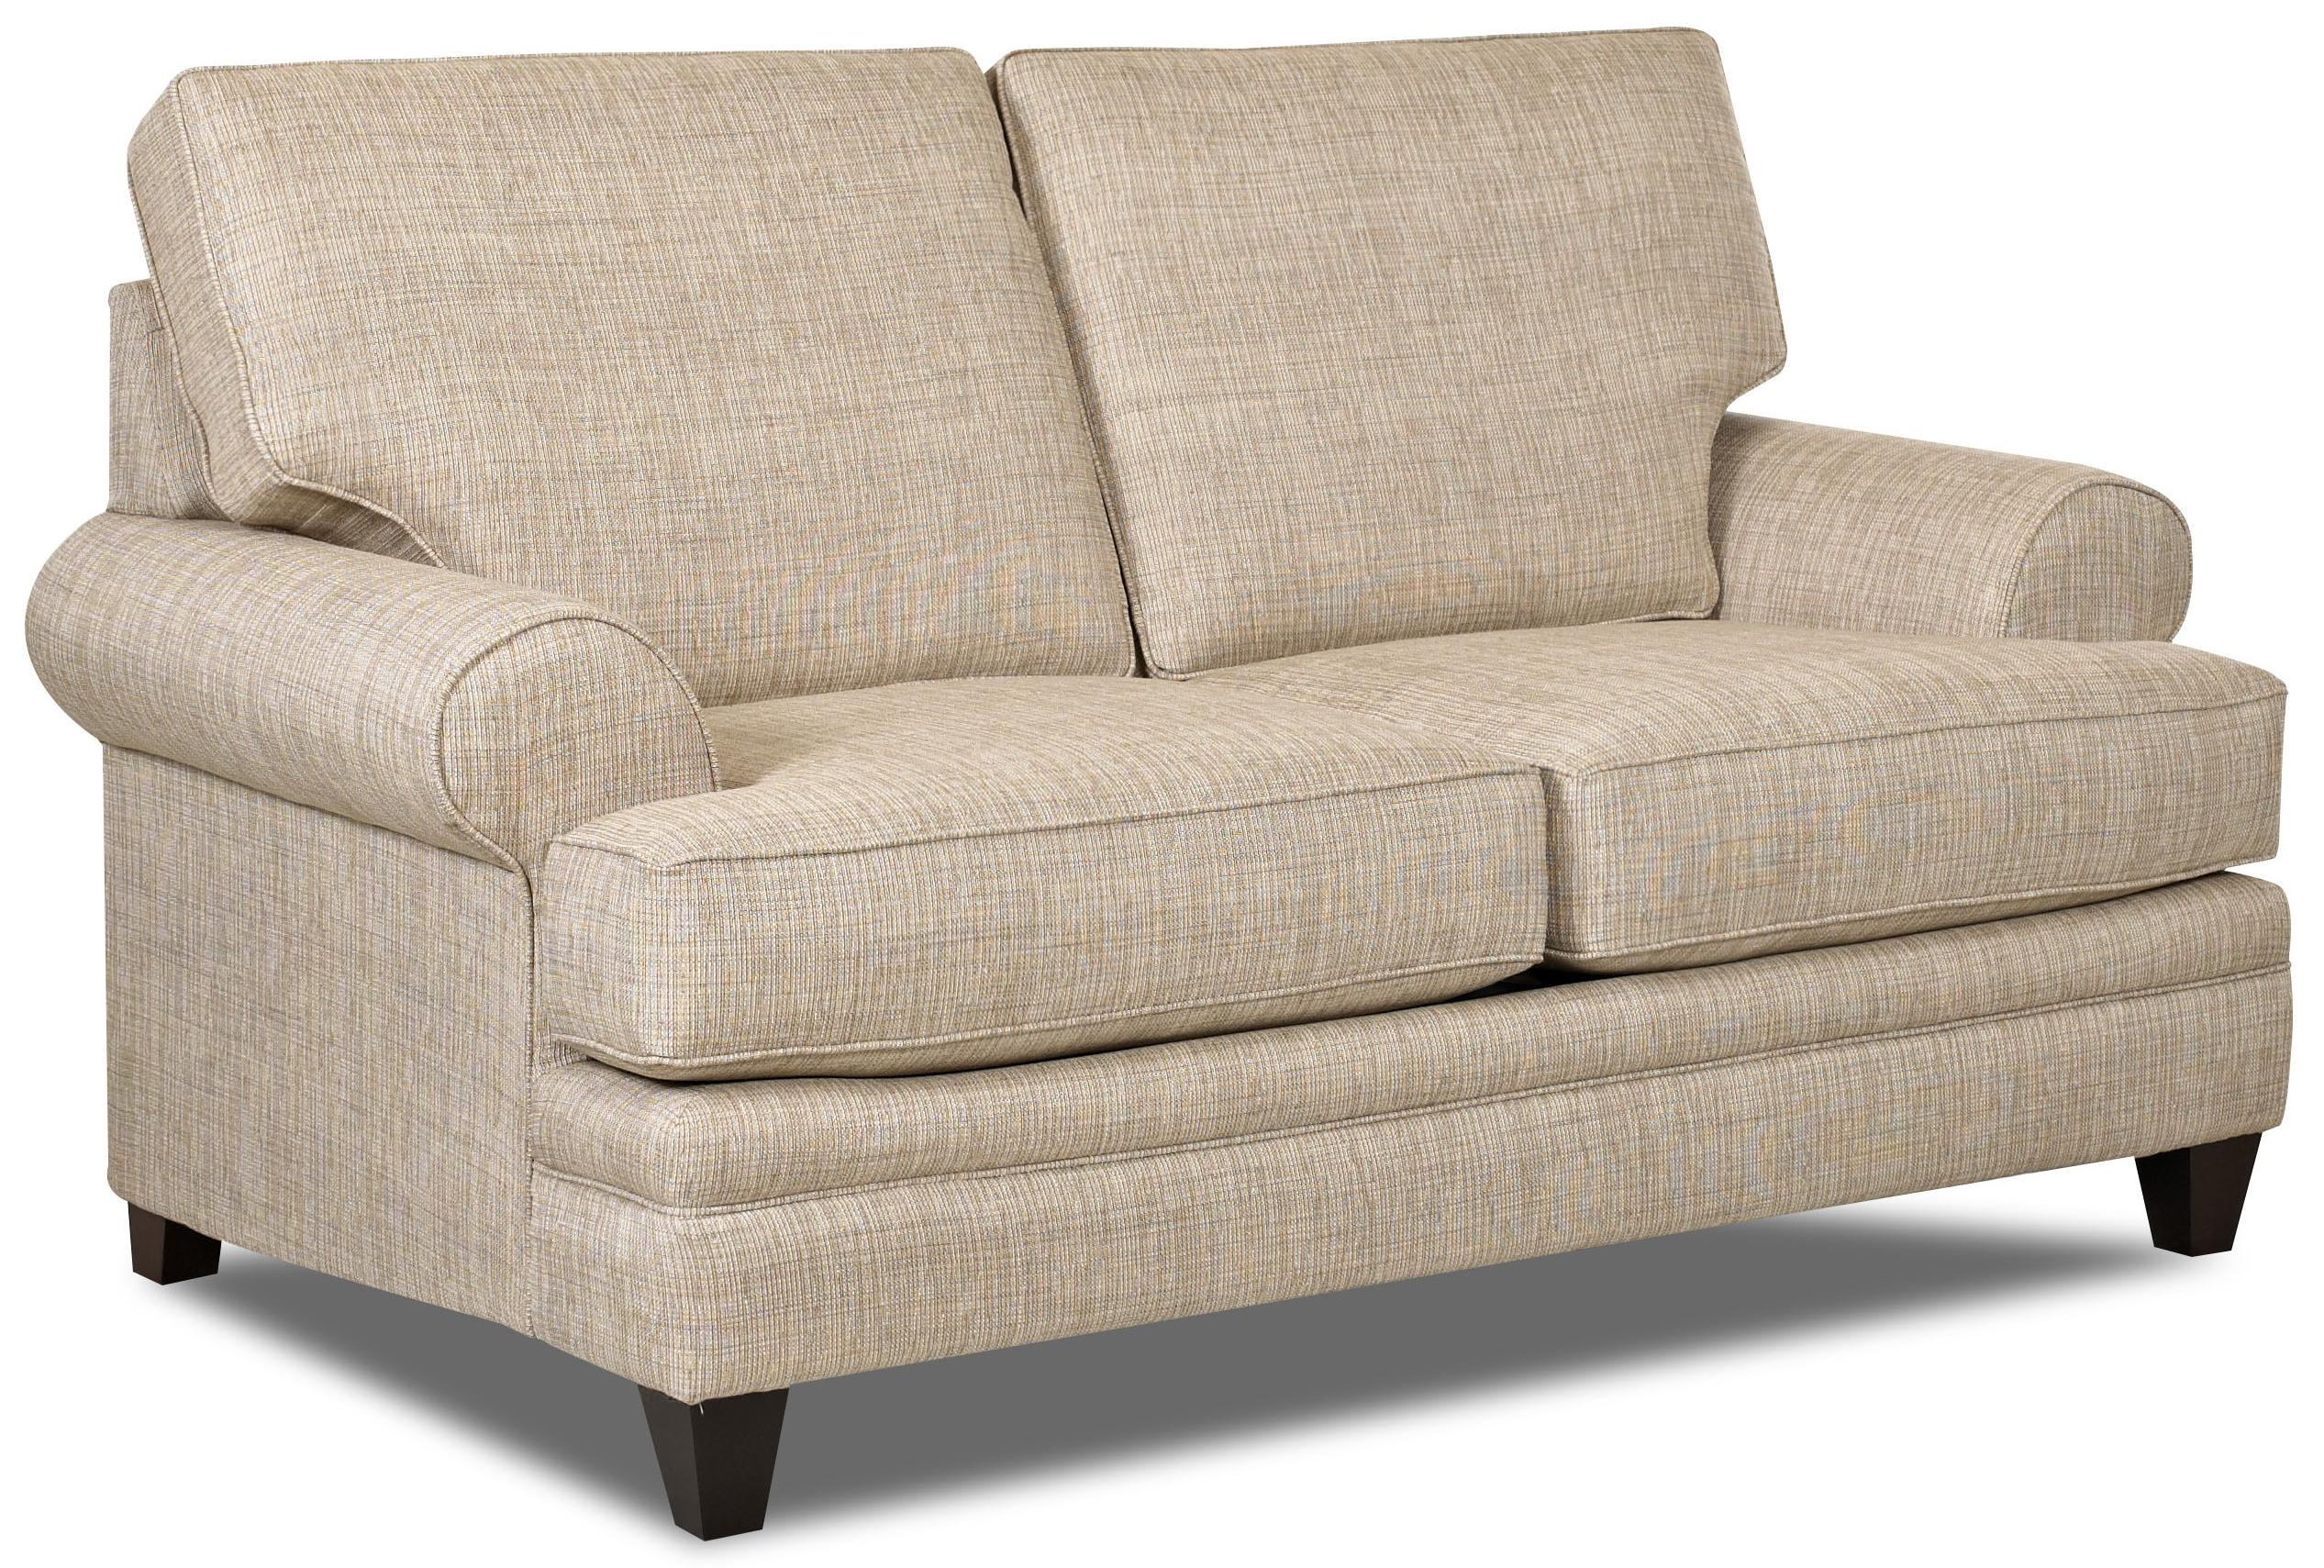 Klaussner Fresno Transitional Loveseat With Low Profile